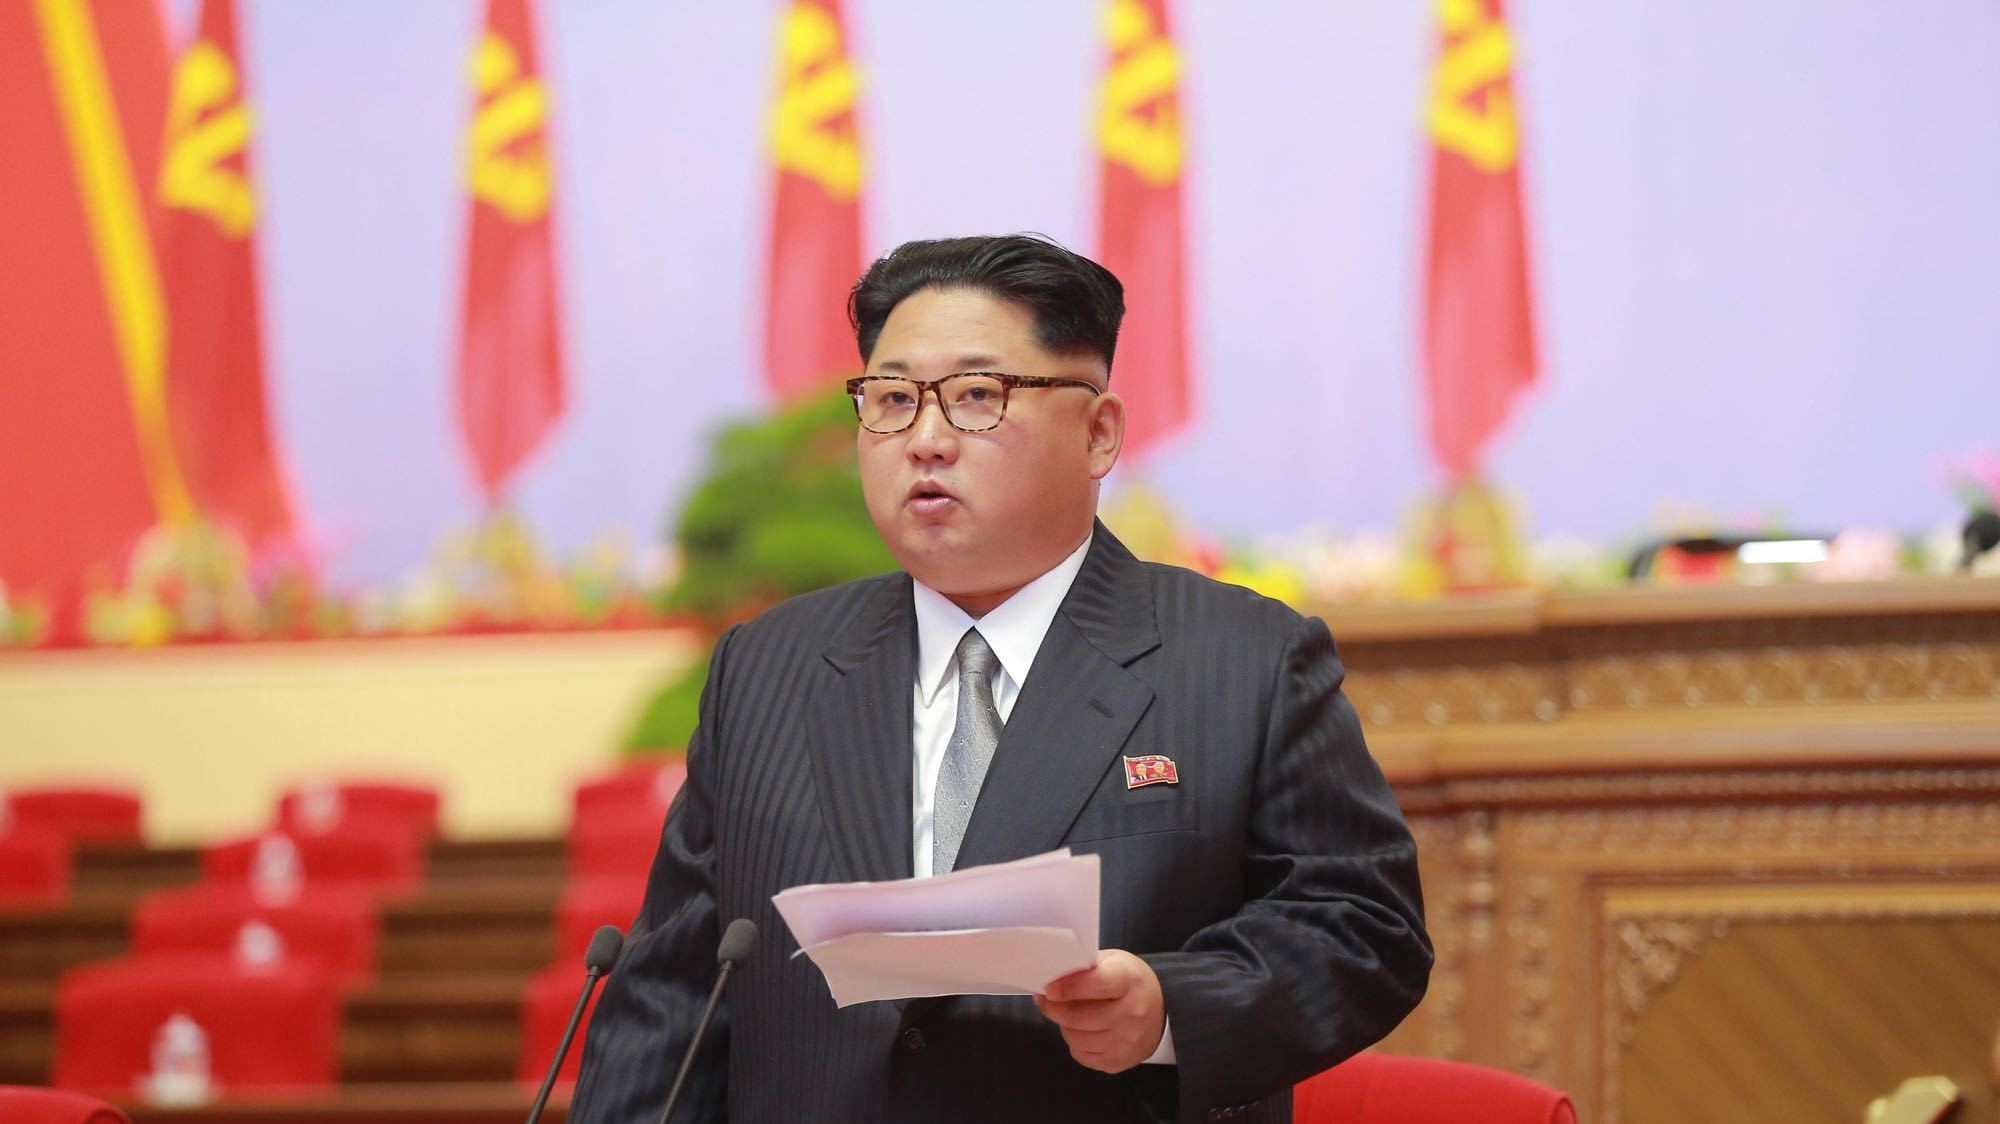 North Korea's Kim Jong-un Celebrates Nuclear Tests, Consolidates Power at Party Congress